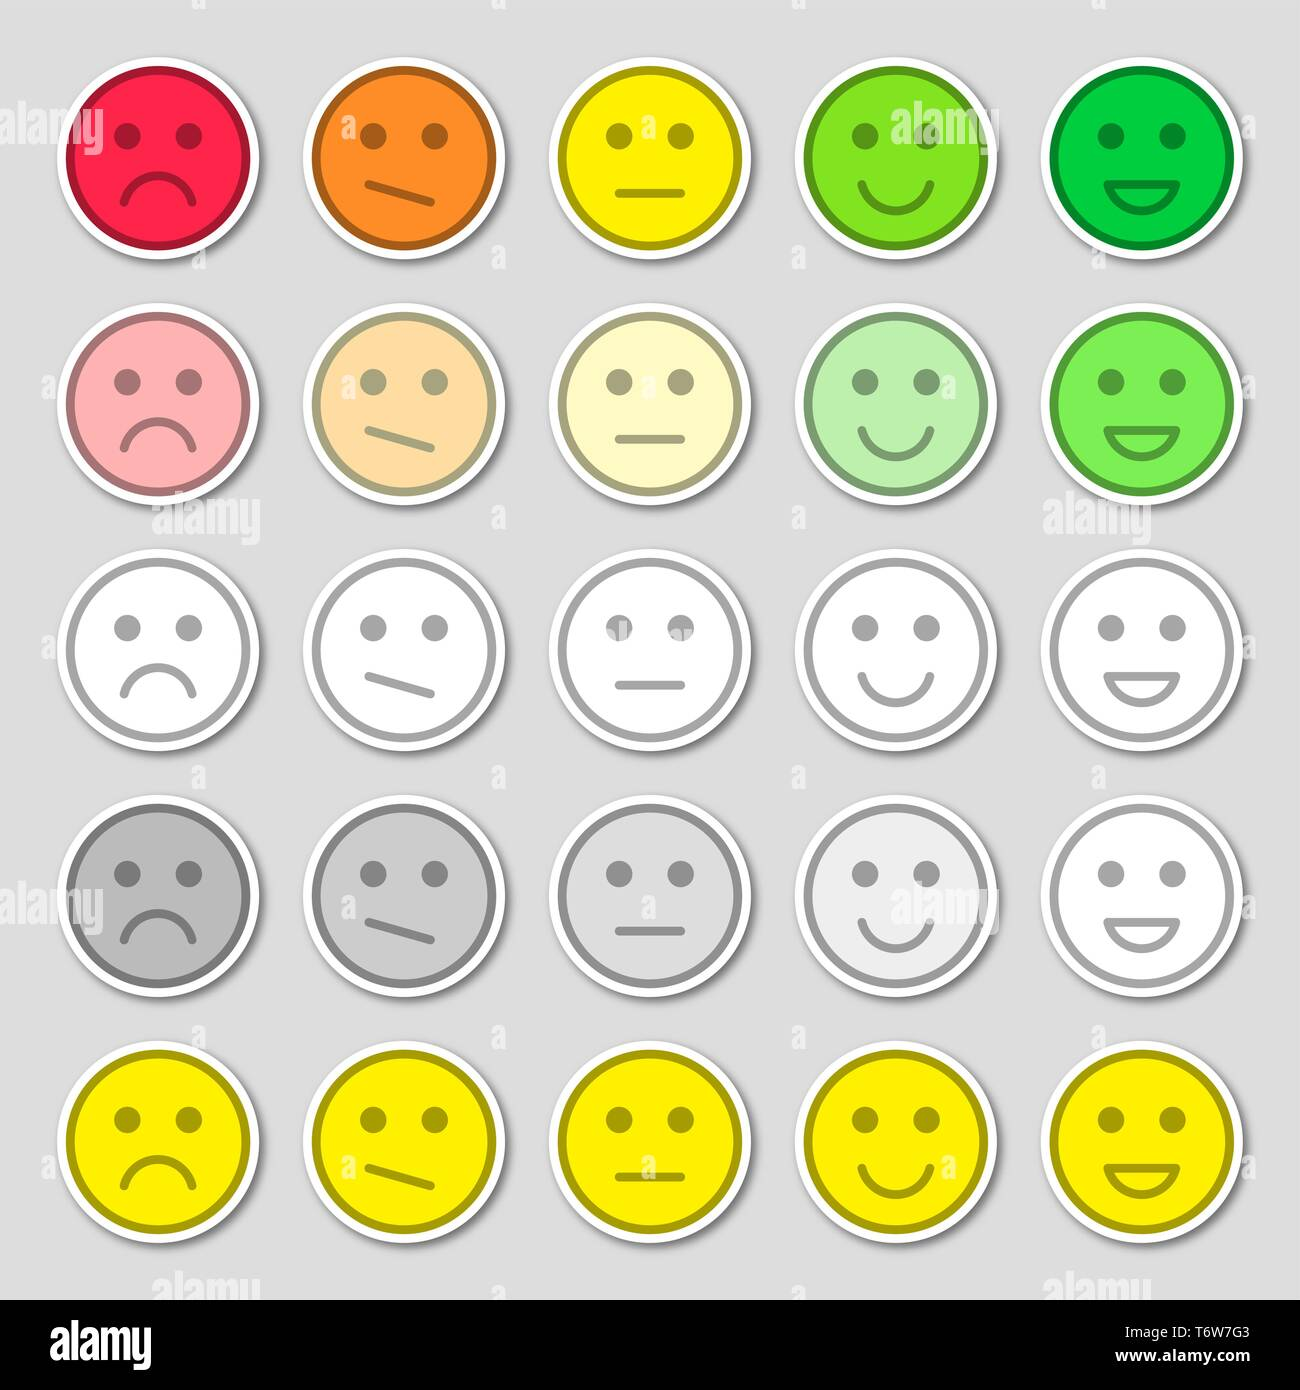 Set of emoji flat icons. Vector illustration. Happy, sad and mood. Vote scale icons set. - Stock Vector